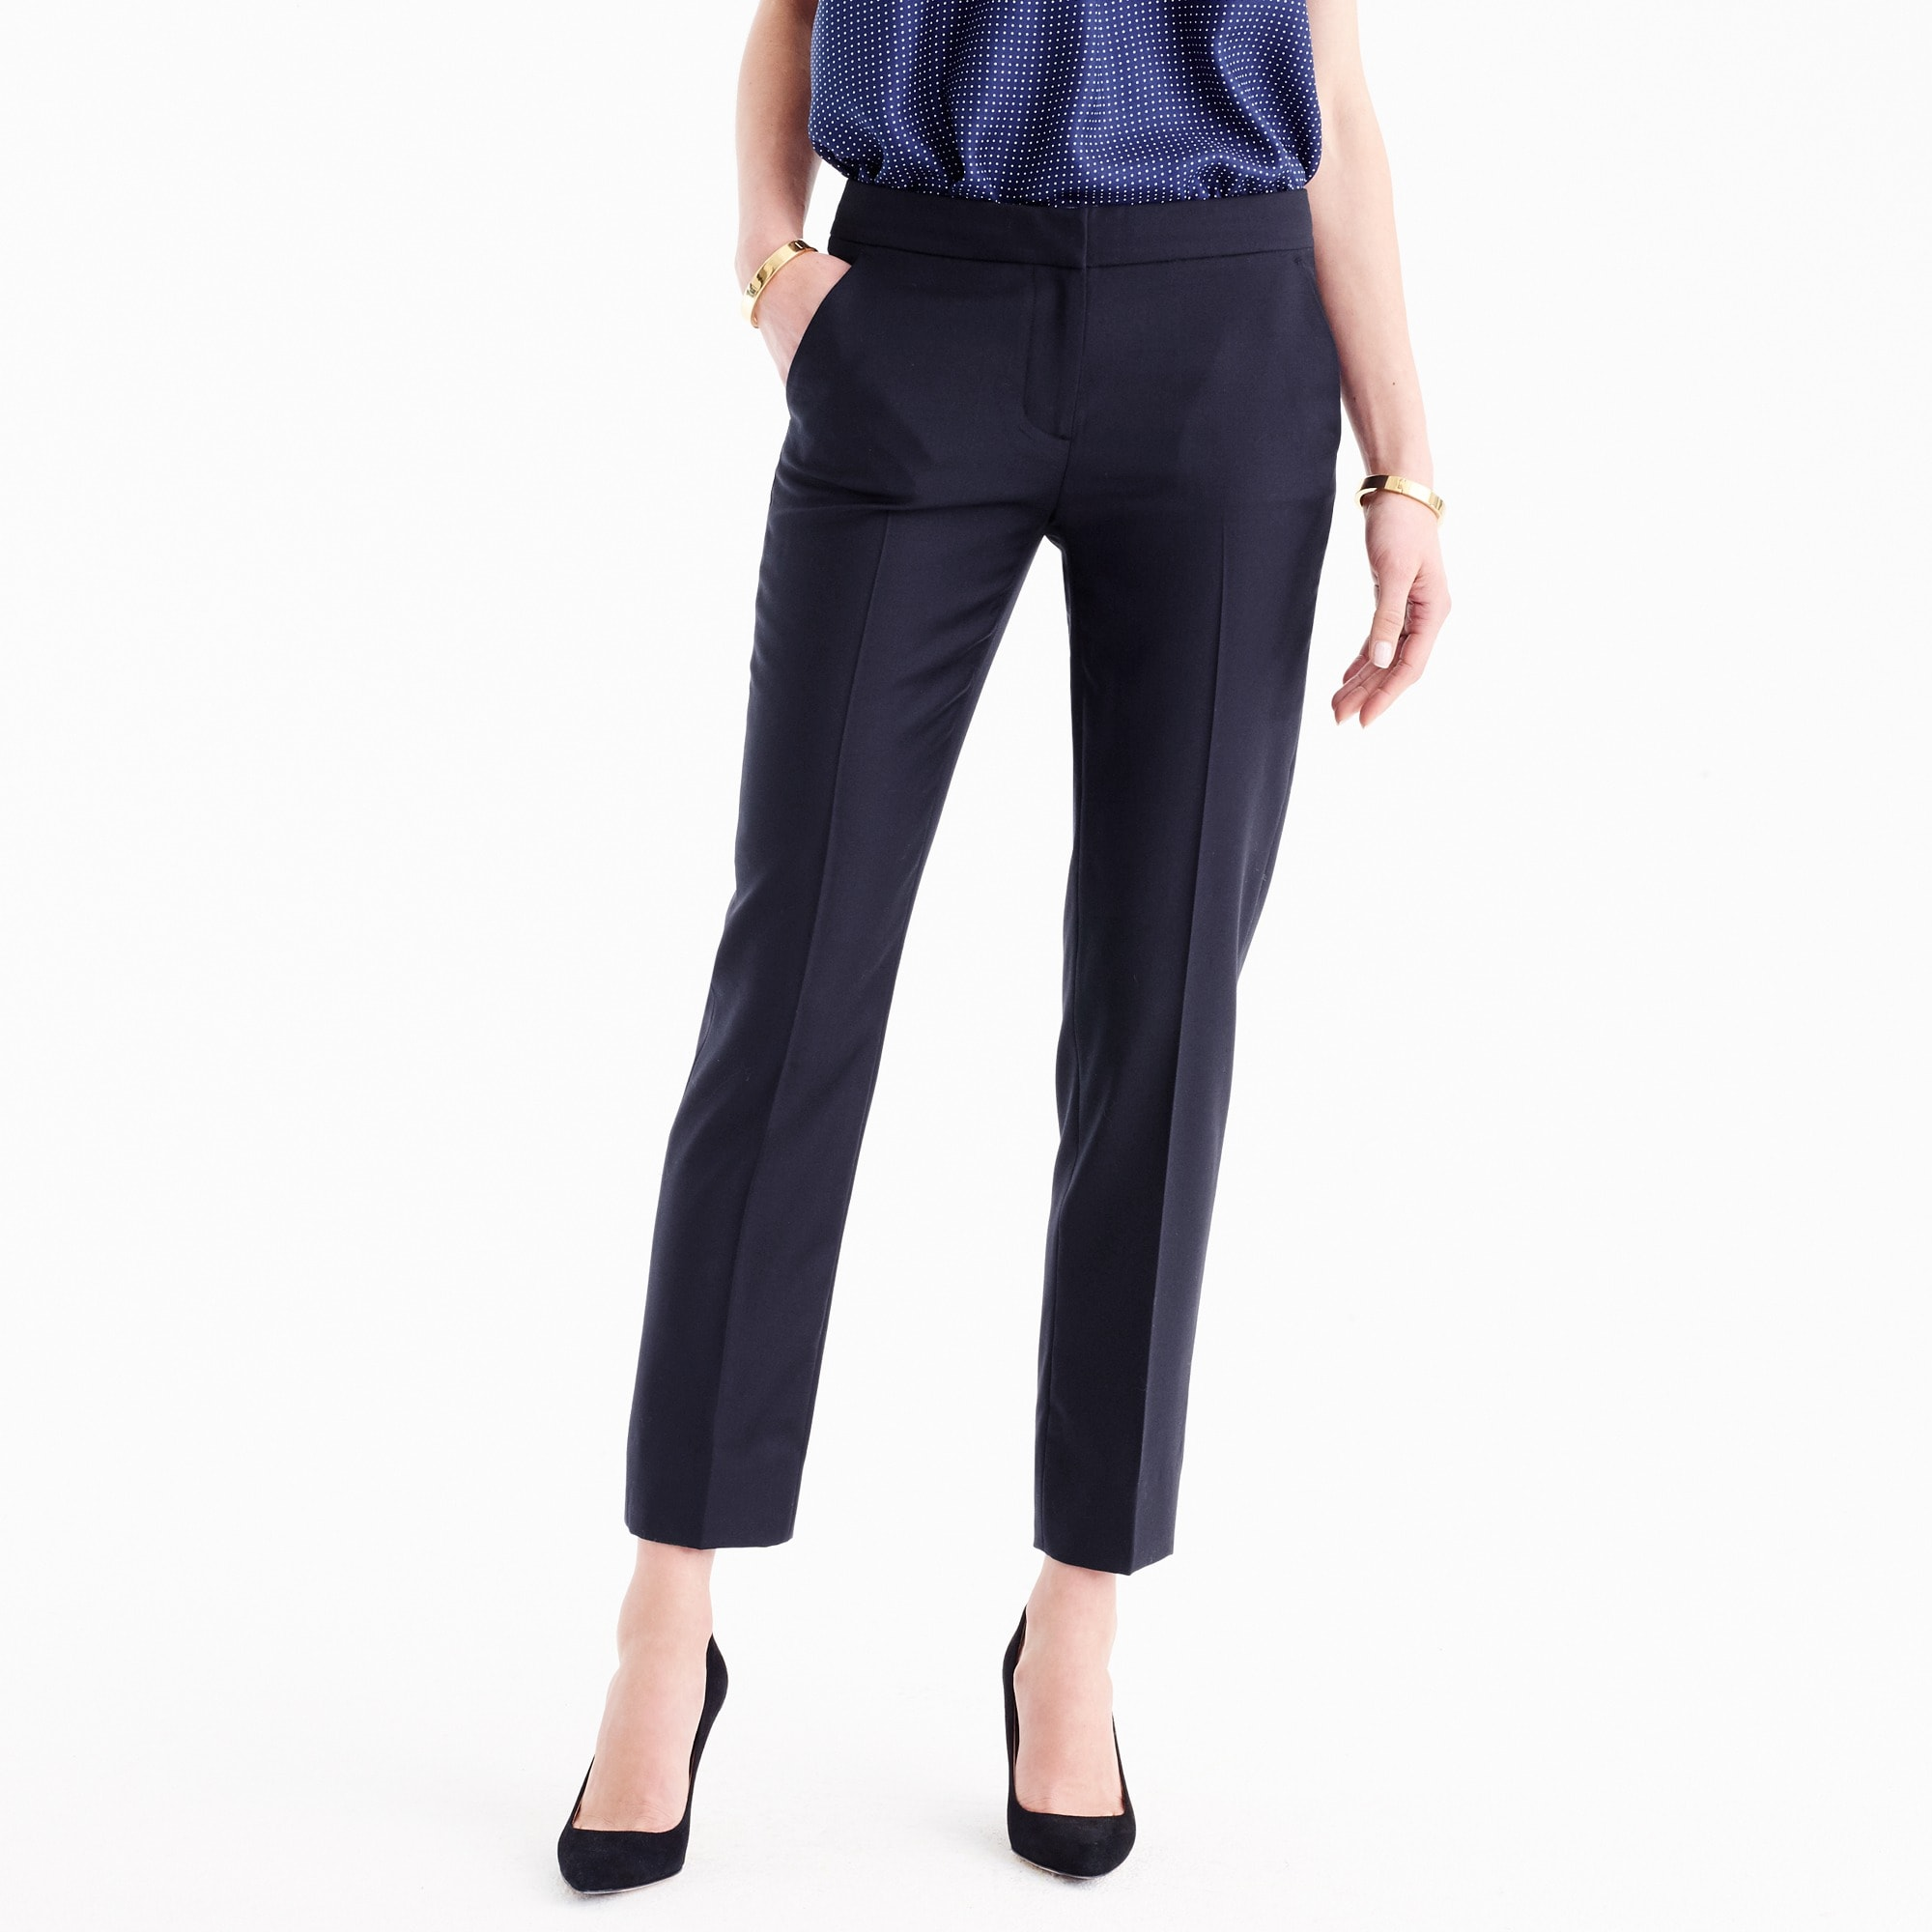 Image 1 for Petite Paley pant in Italian Super 120s wool